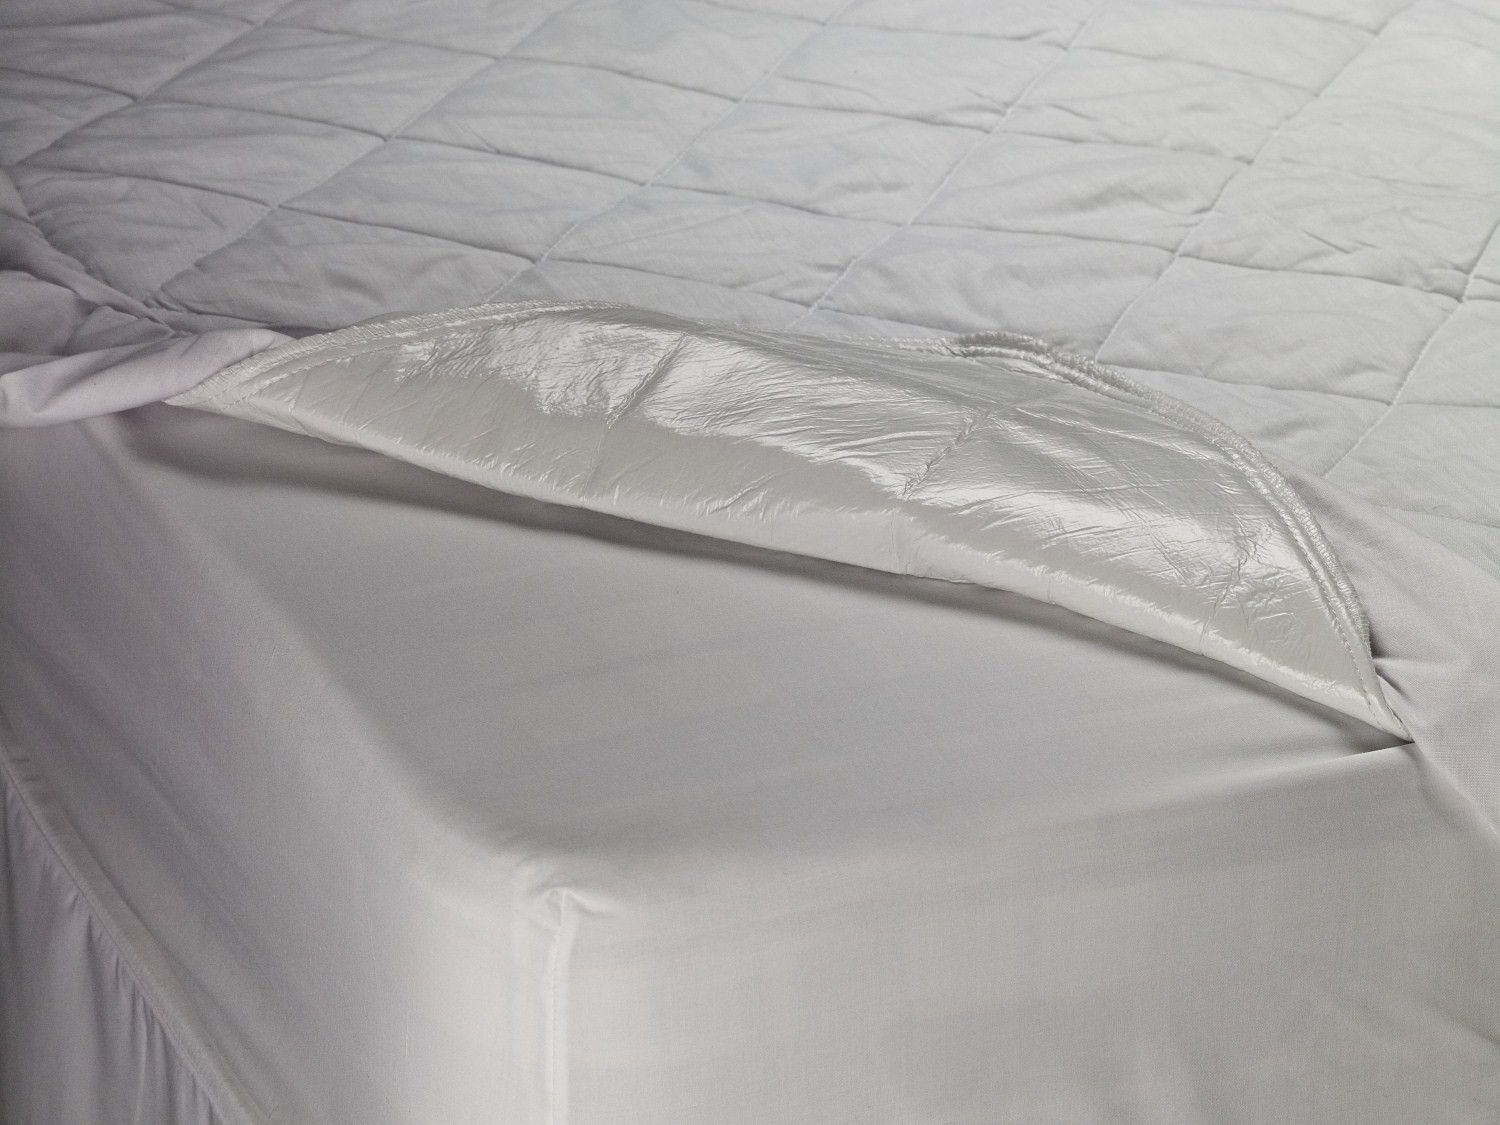 Waterproof Quilted Mattress Protector Waterproof Quilt Waterproof Protector Mattress Protector